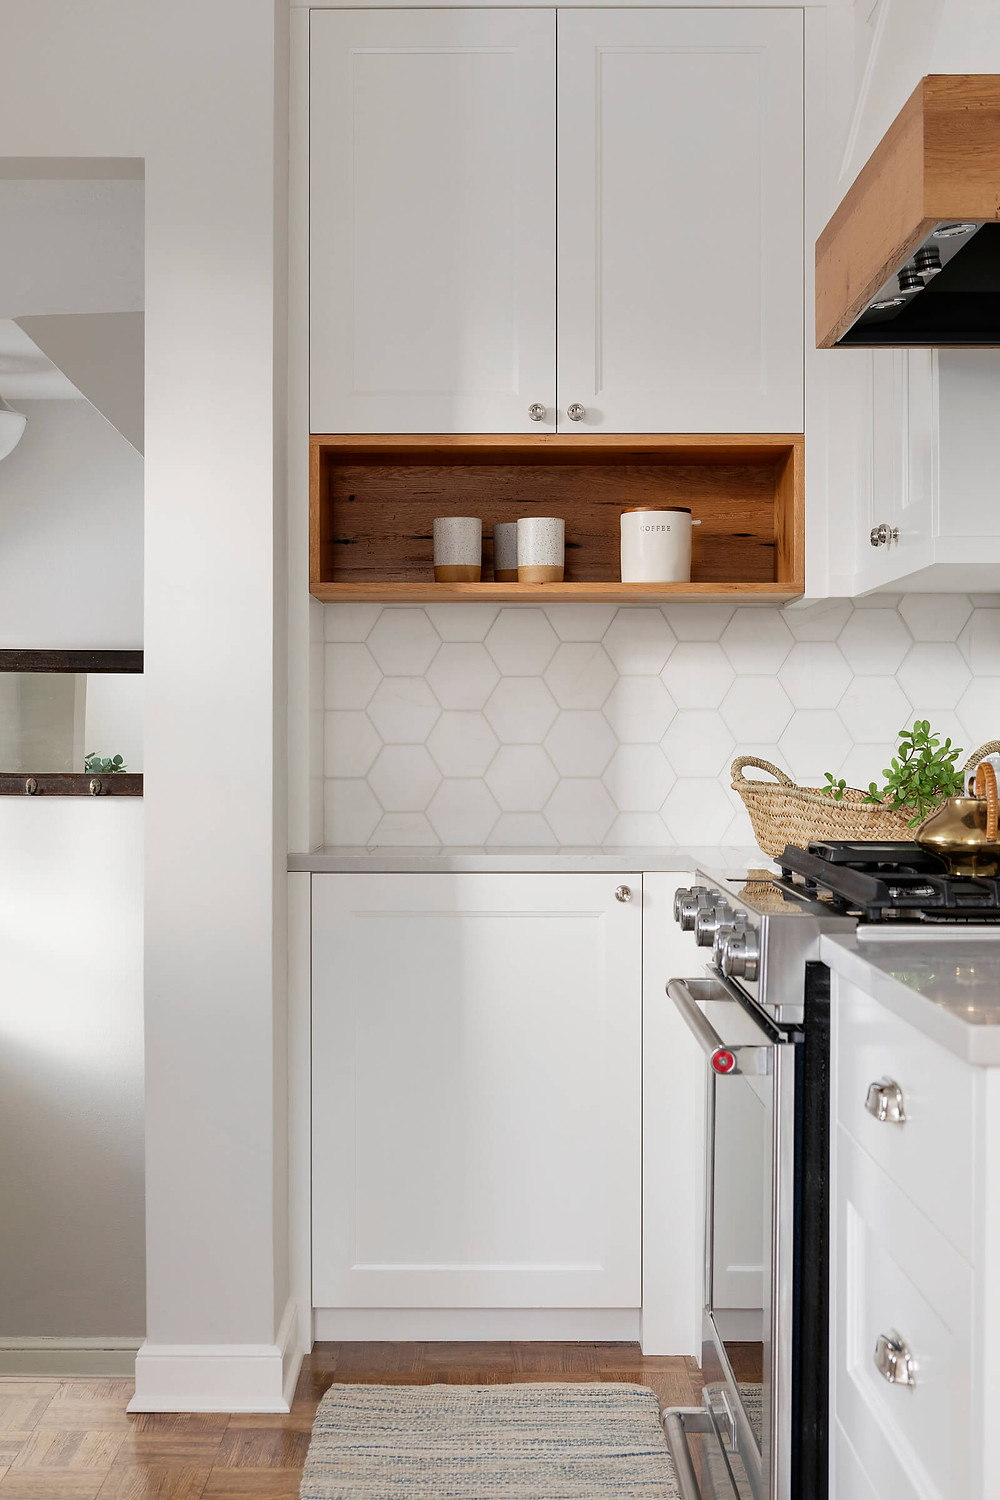 Our favorite kitchen niche designs. Featuring a custom coffee station for mugs, coffee grounds, and more.